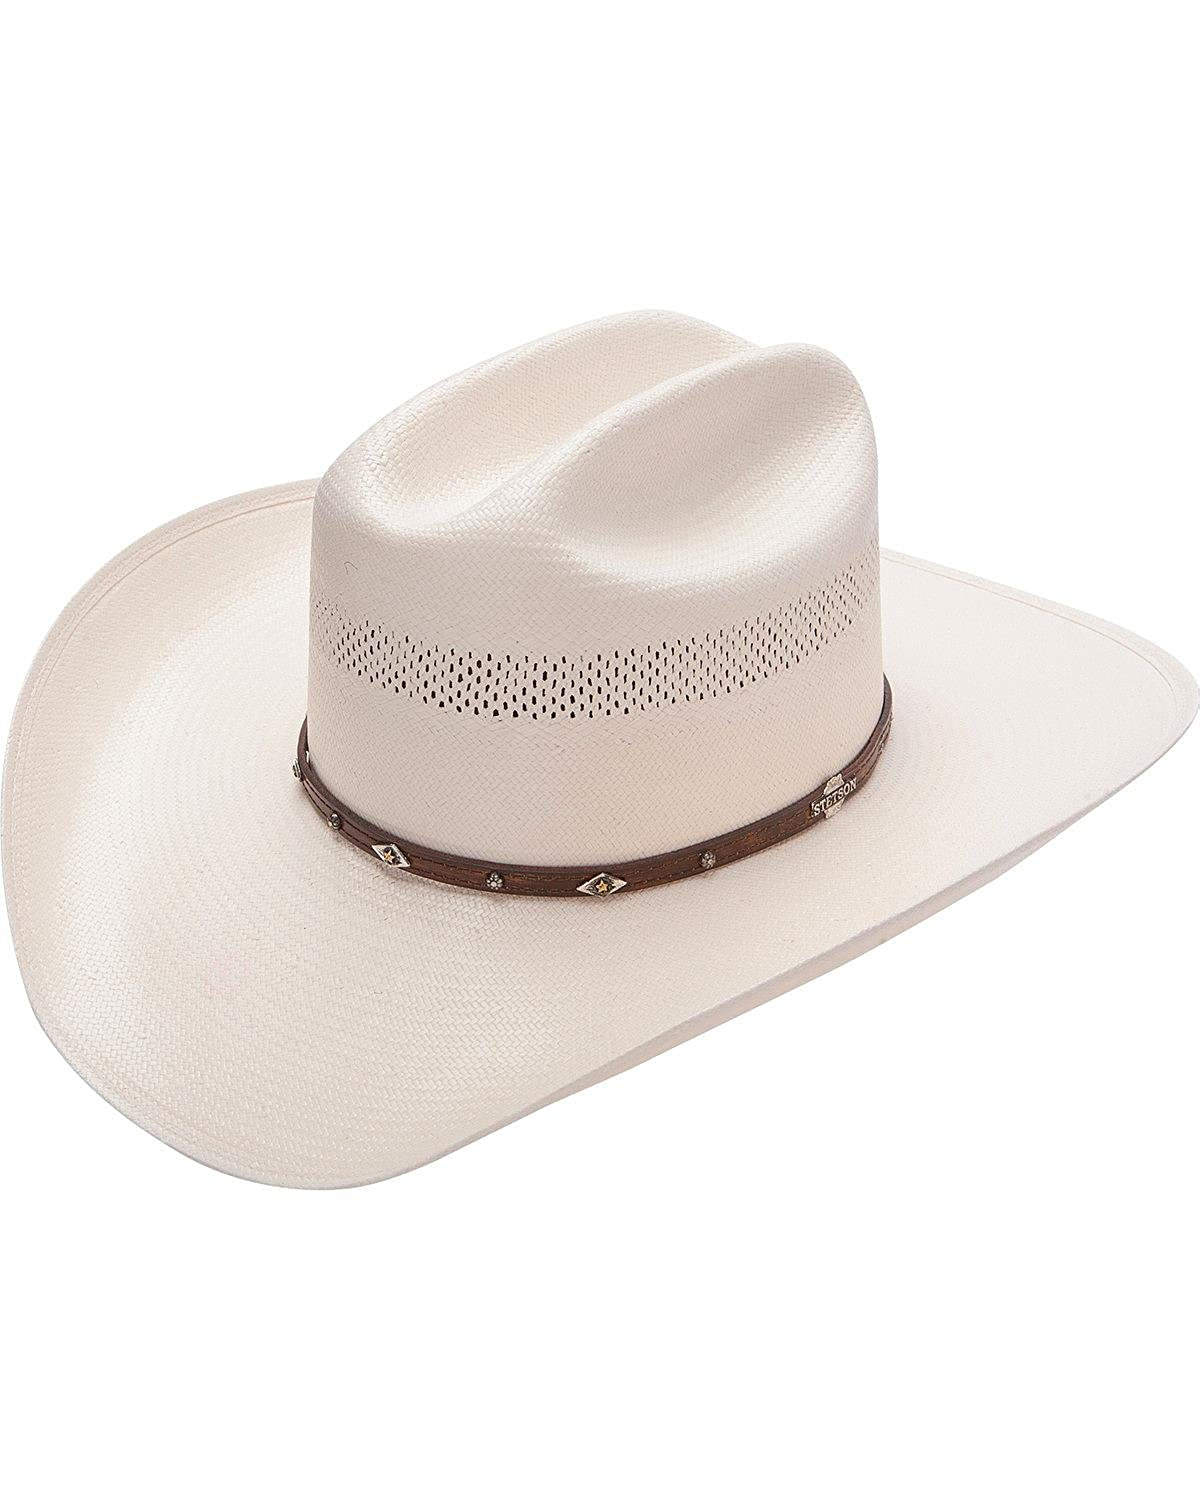 c0f4c4f6ecdc6 Stetson Men s Lobo 10X Straw All-Around Vent Star Concho Band Cowboy Hat at  Amazon Men s Clothing store